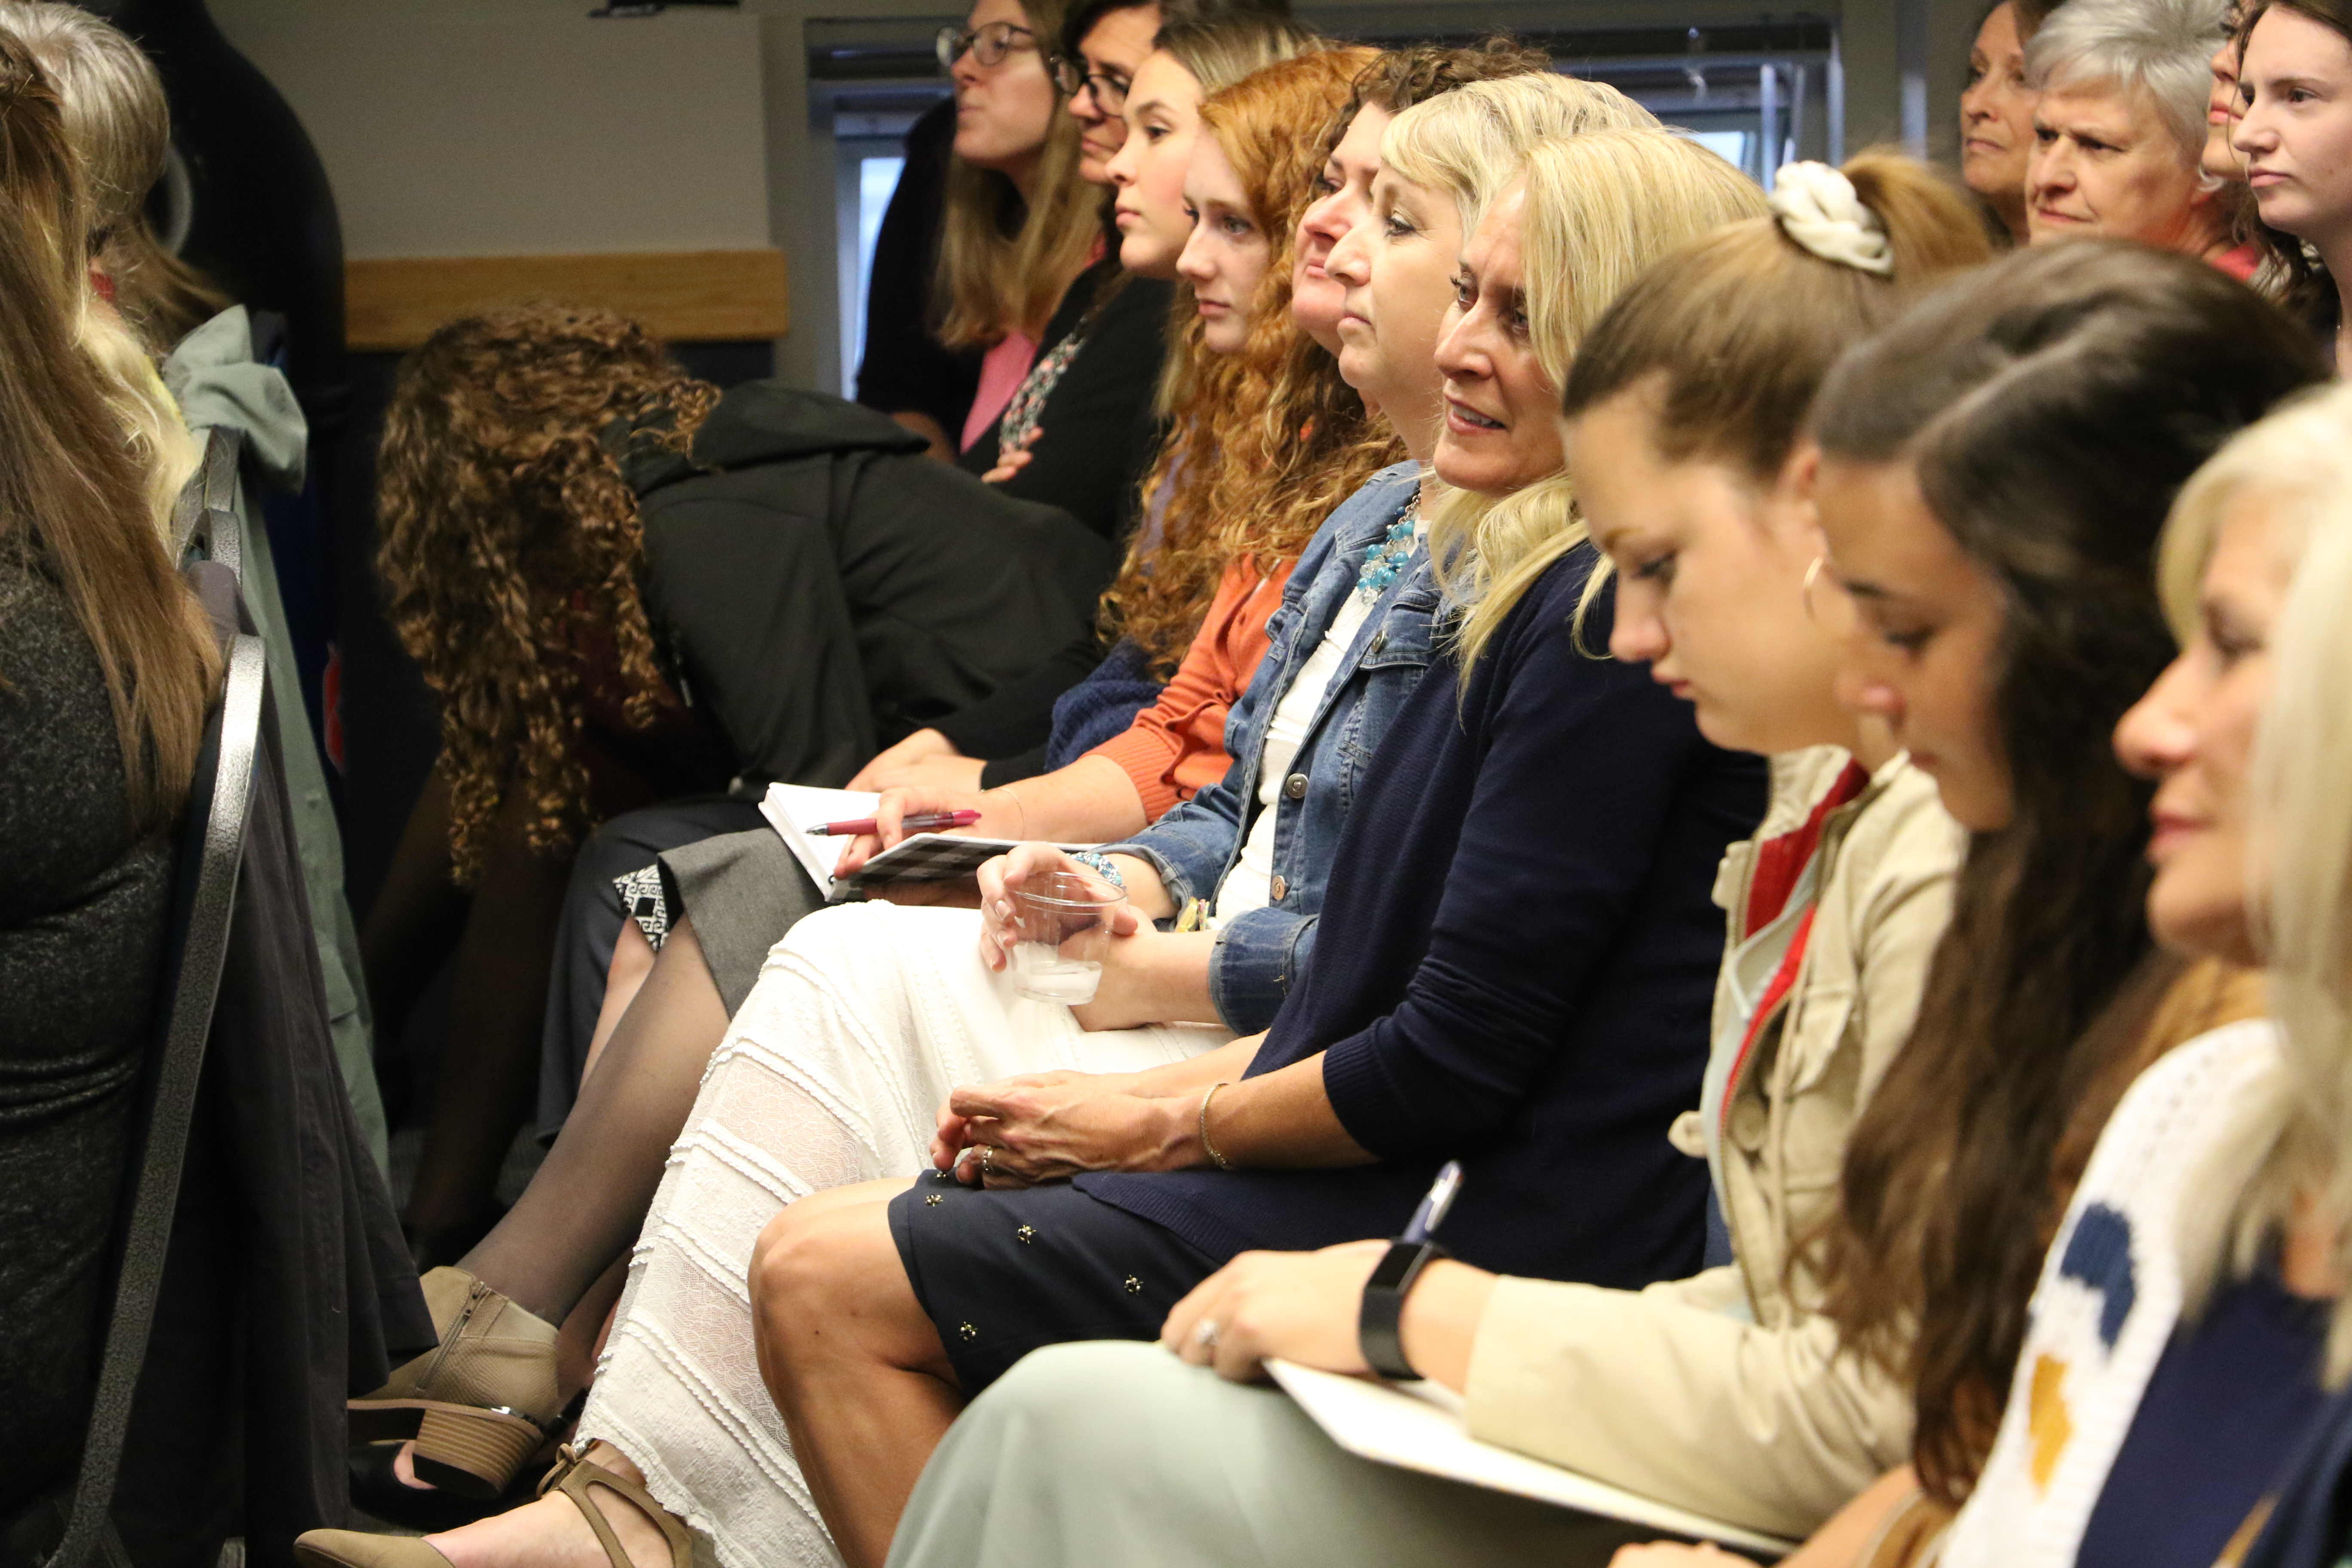 A group of women, representing nine stakes of young single adult and young married wards in the Logan, Utah area, participate in a Q&A session with Sister Sharon Eubank prior to a devotional at the Dee Glen Smith Spectrum at Utah State University in Logan, Utah, on Sunday, Nov. 3, 2019.